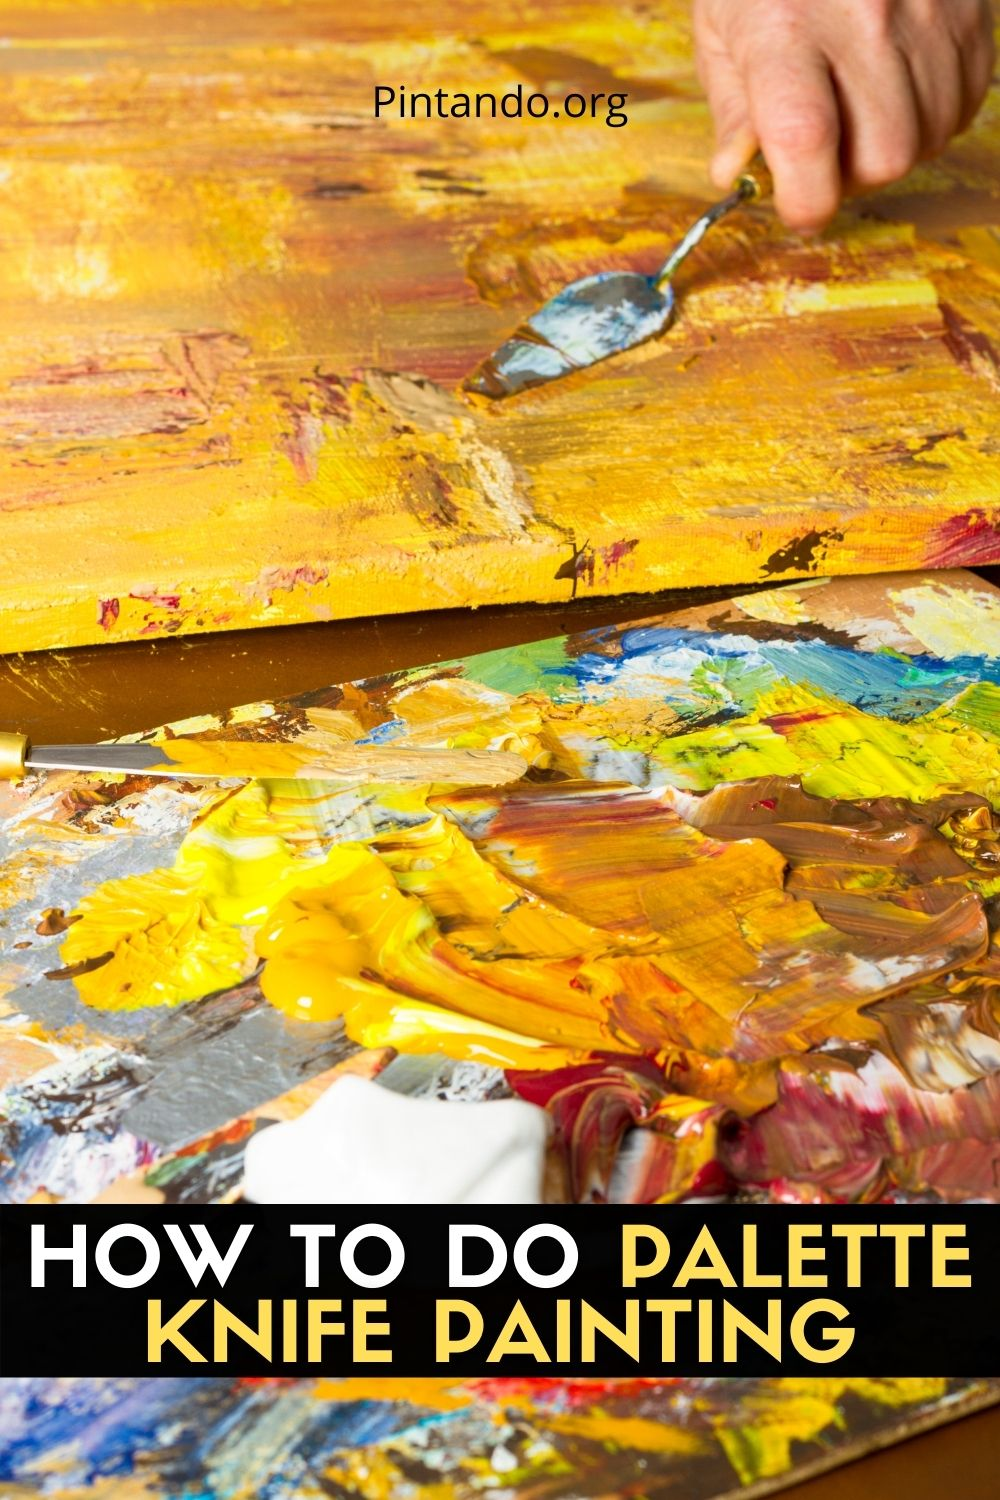 HOW TO DOA PALETTE KNIFE PAINTING (2)